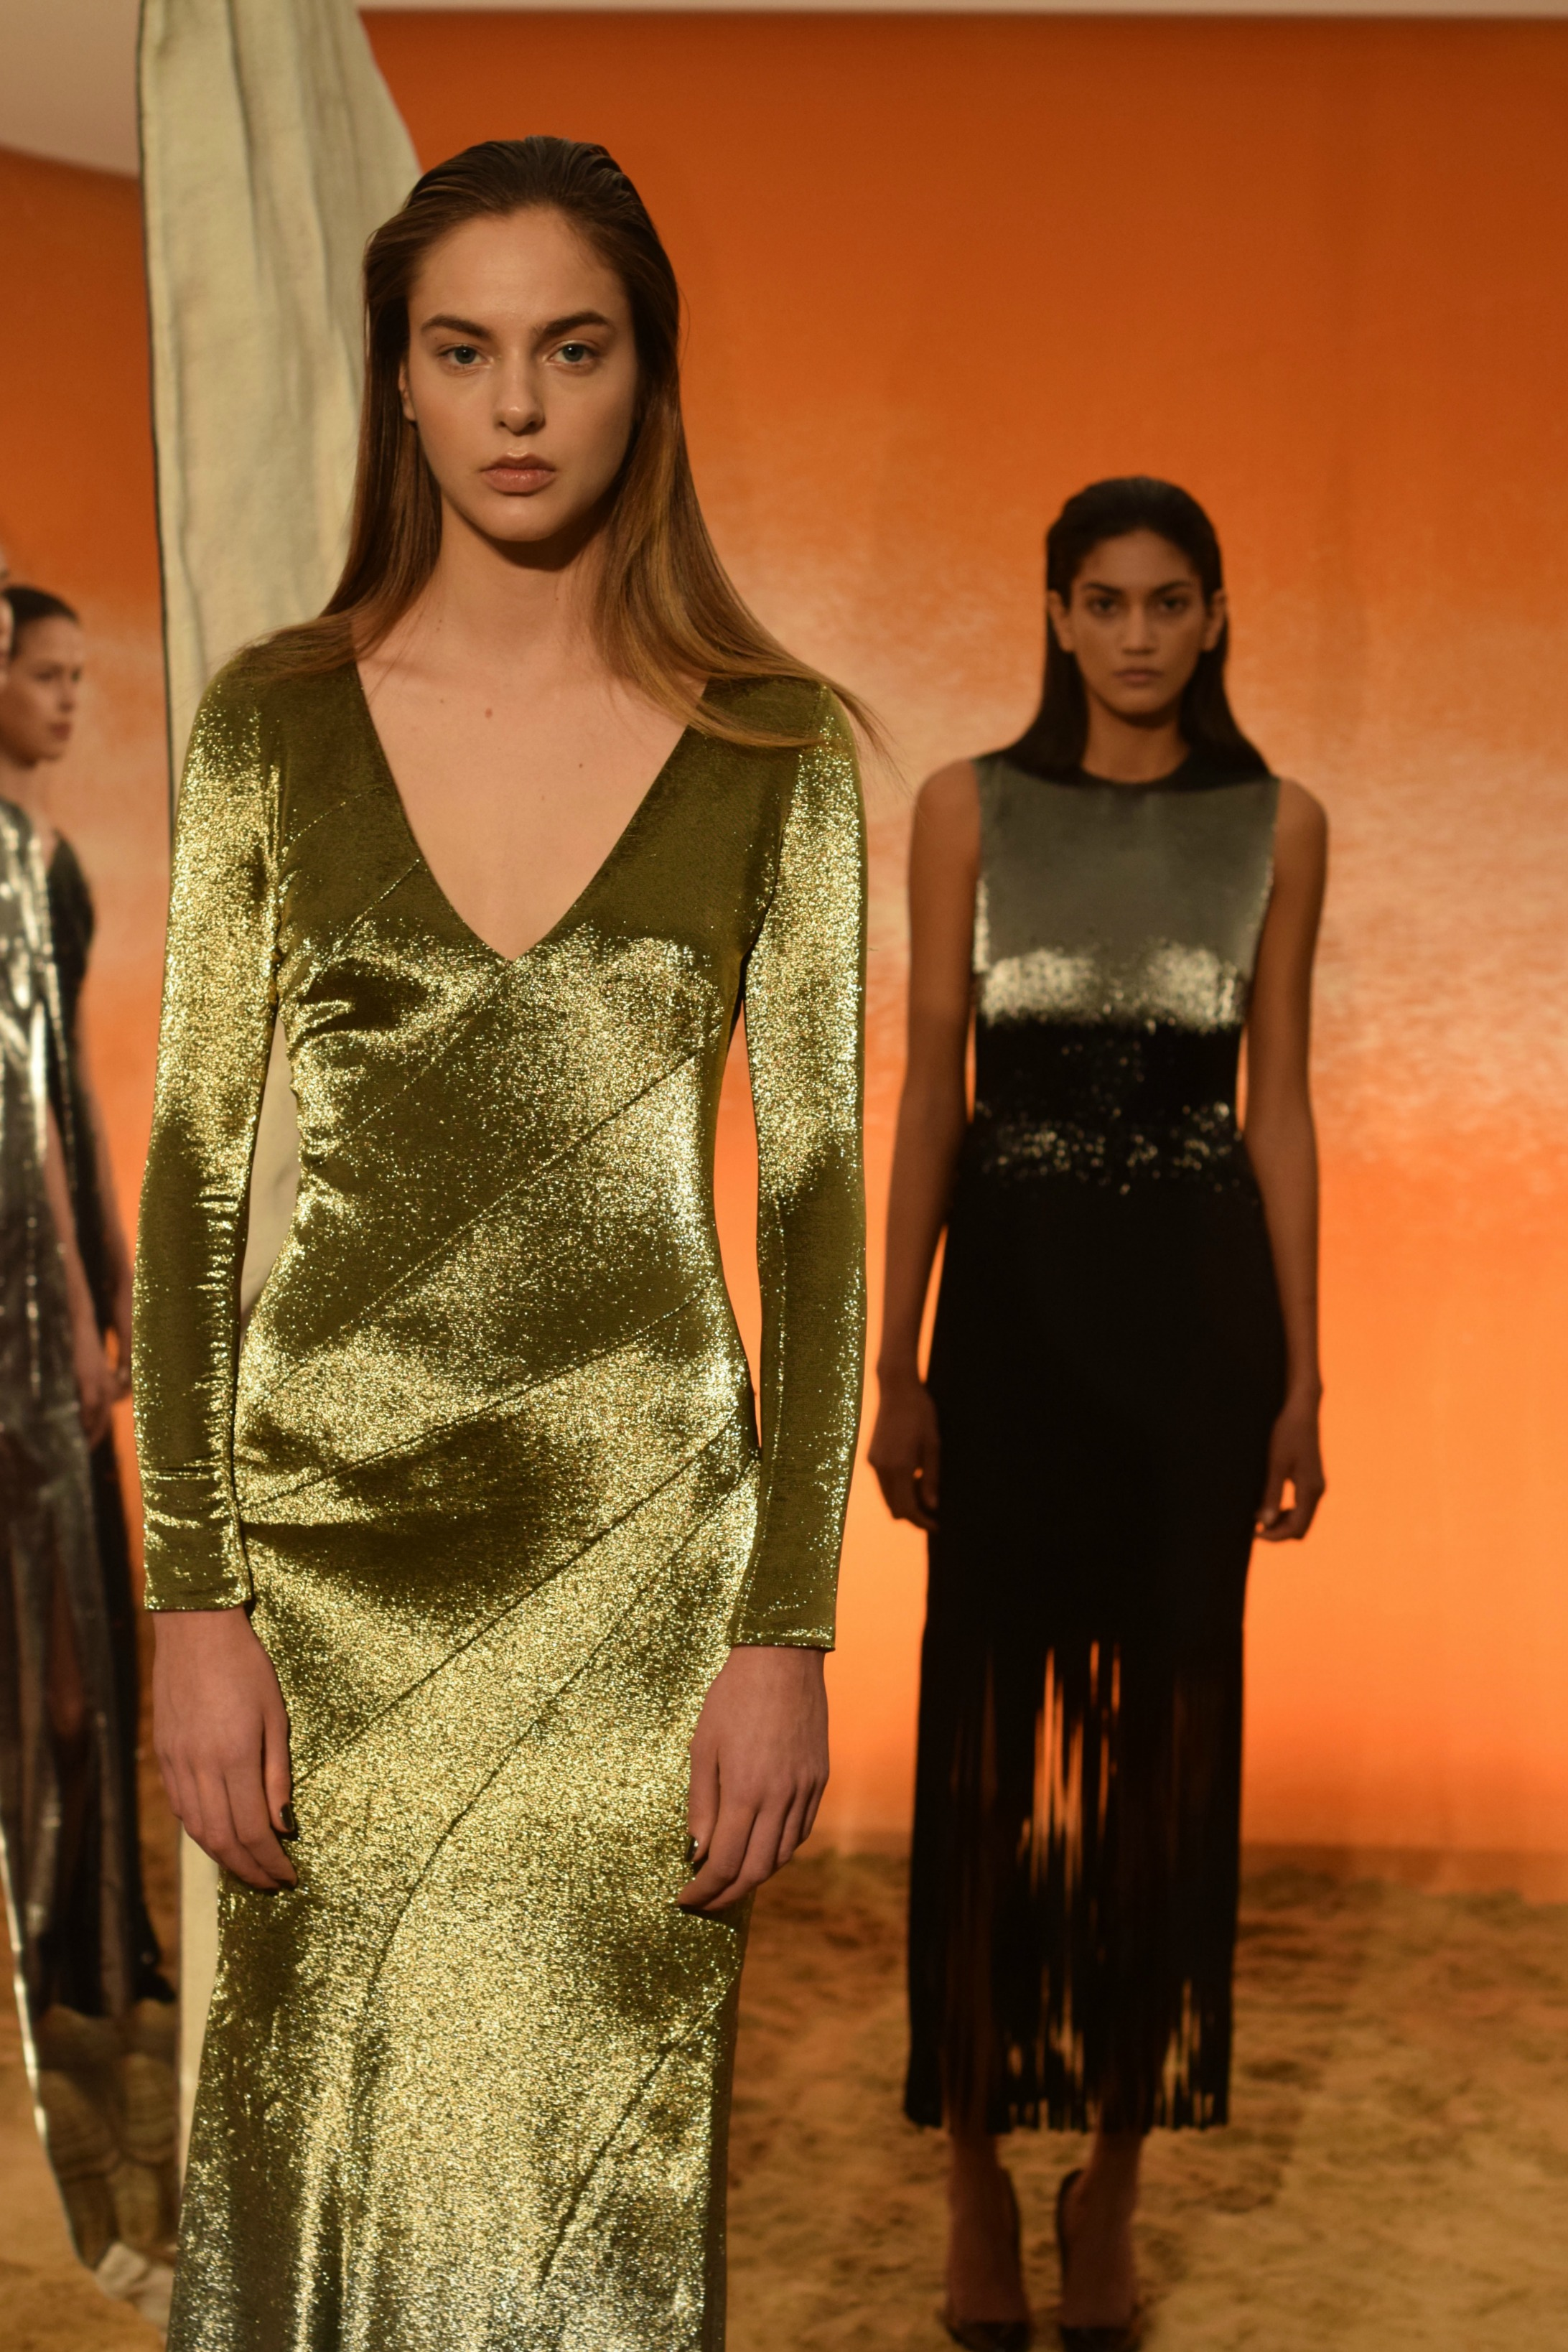 NYFW Mathieu Mirano Fashion Presentation Fall:Winter 2016 Louboutins & Love Fashion Blog Esther Santer NYC Street Style Models Collection Hair Makeup Dress Pretty Fringe Trends Green Gown Gold Metallic Silver Inspo Press Event Coverage Details Photos.jpg